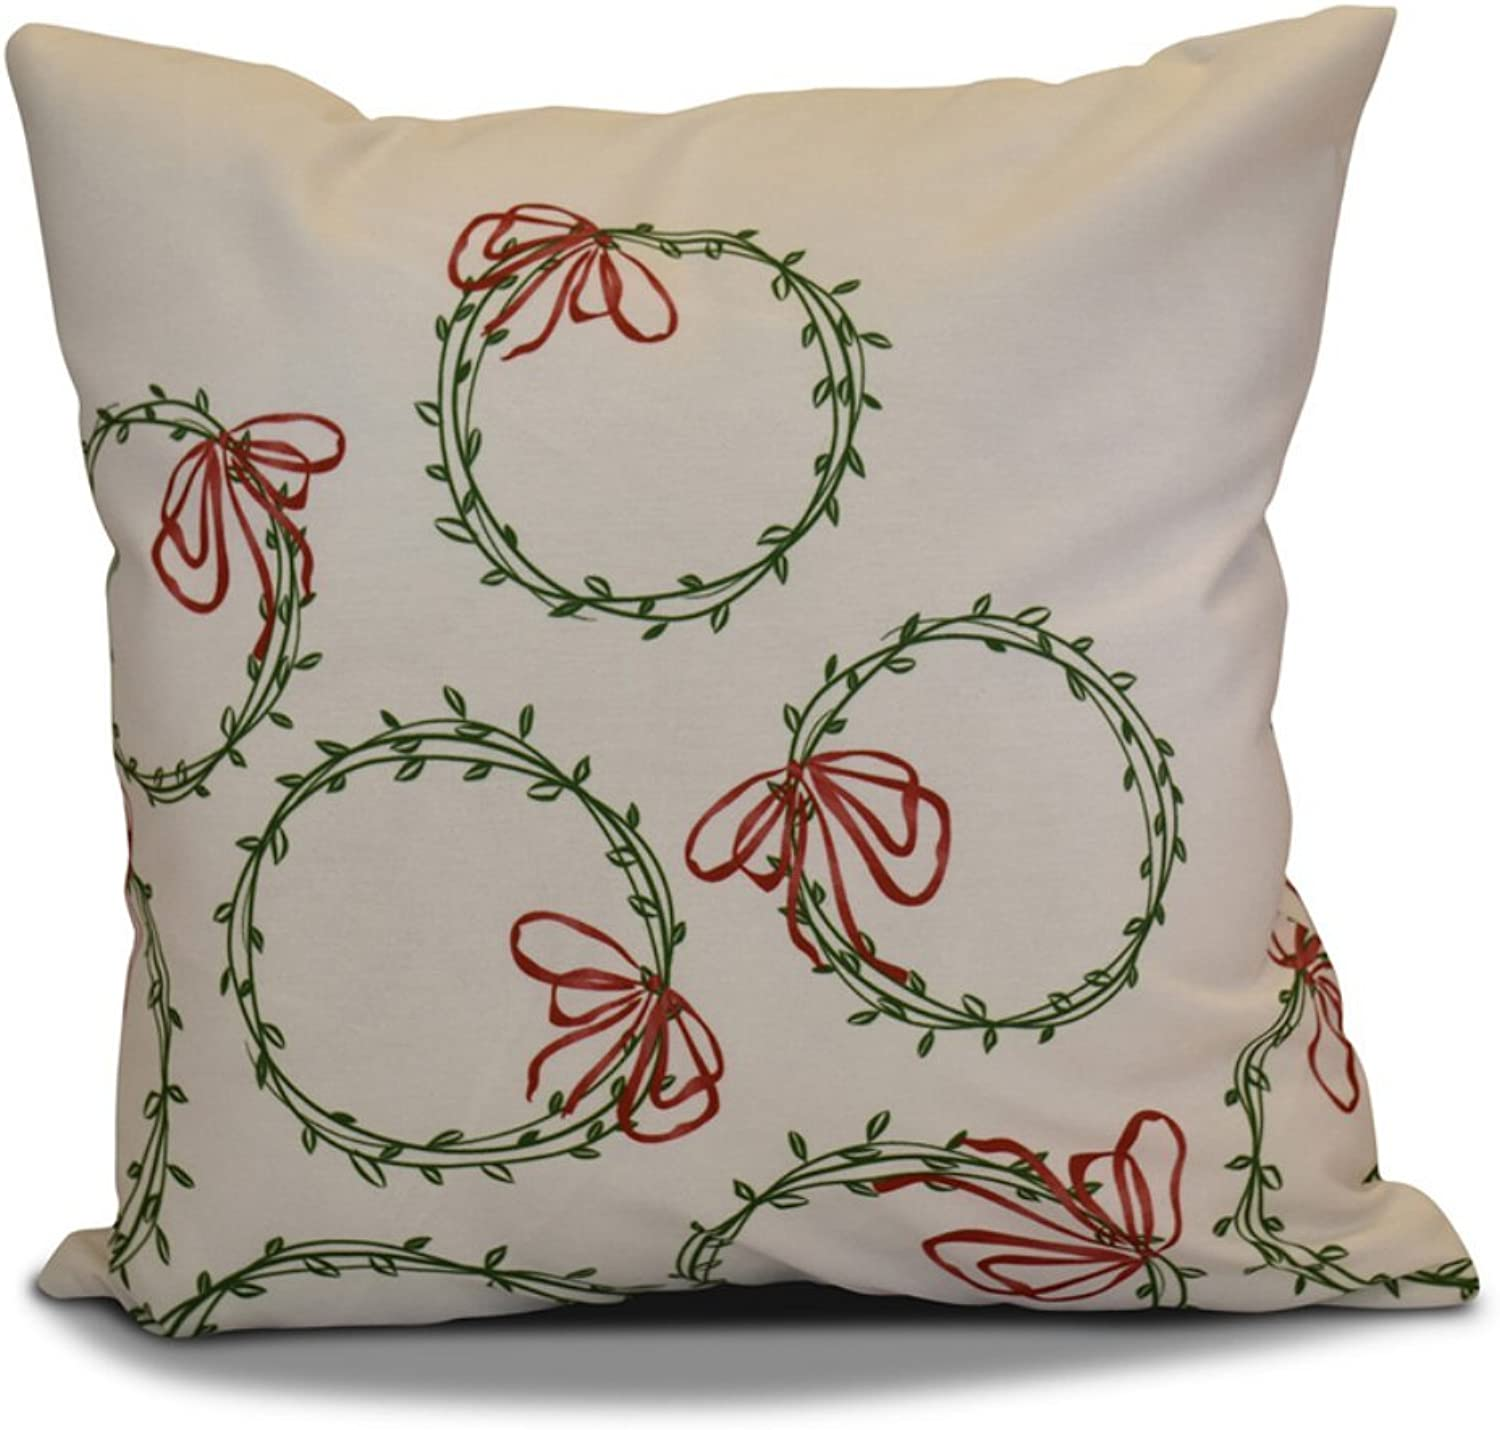 E by design O5PHGN695GR7RE116 16 X 16  Decorative Holiday Geometric Print Green Outdoor Pillow